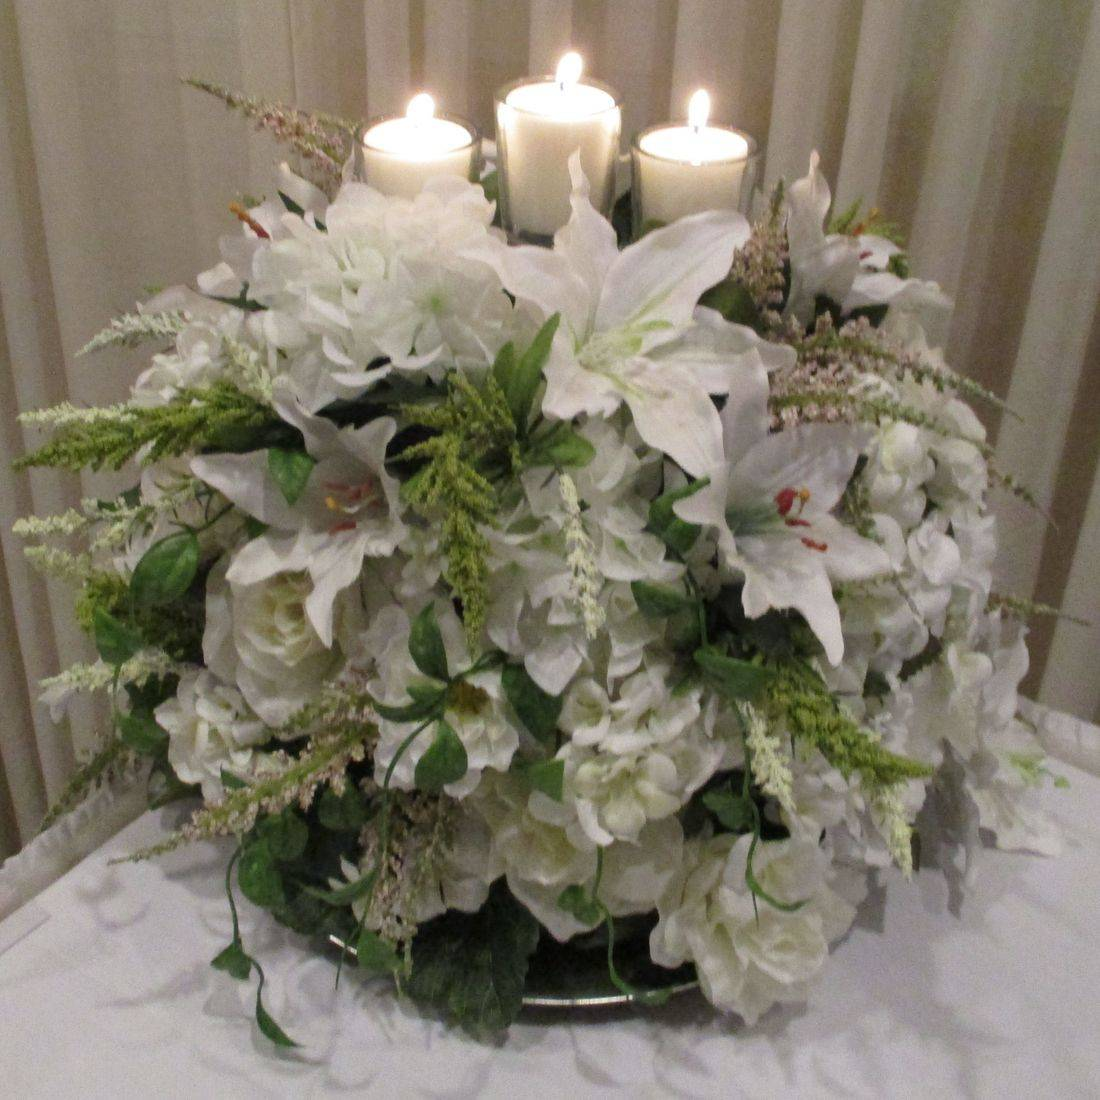 wedding, wedding ideas, wedding flowers, silk flowers, flower rentals, centerpieces, wedding centerpieces, event rentals, special event flowers